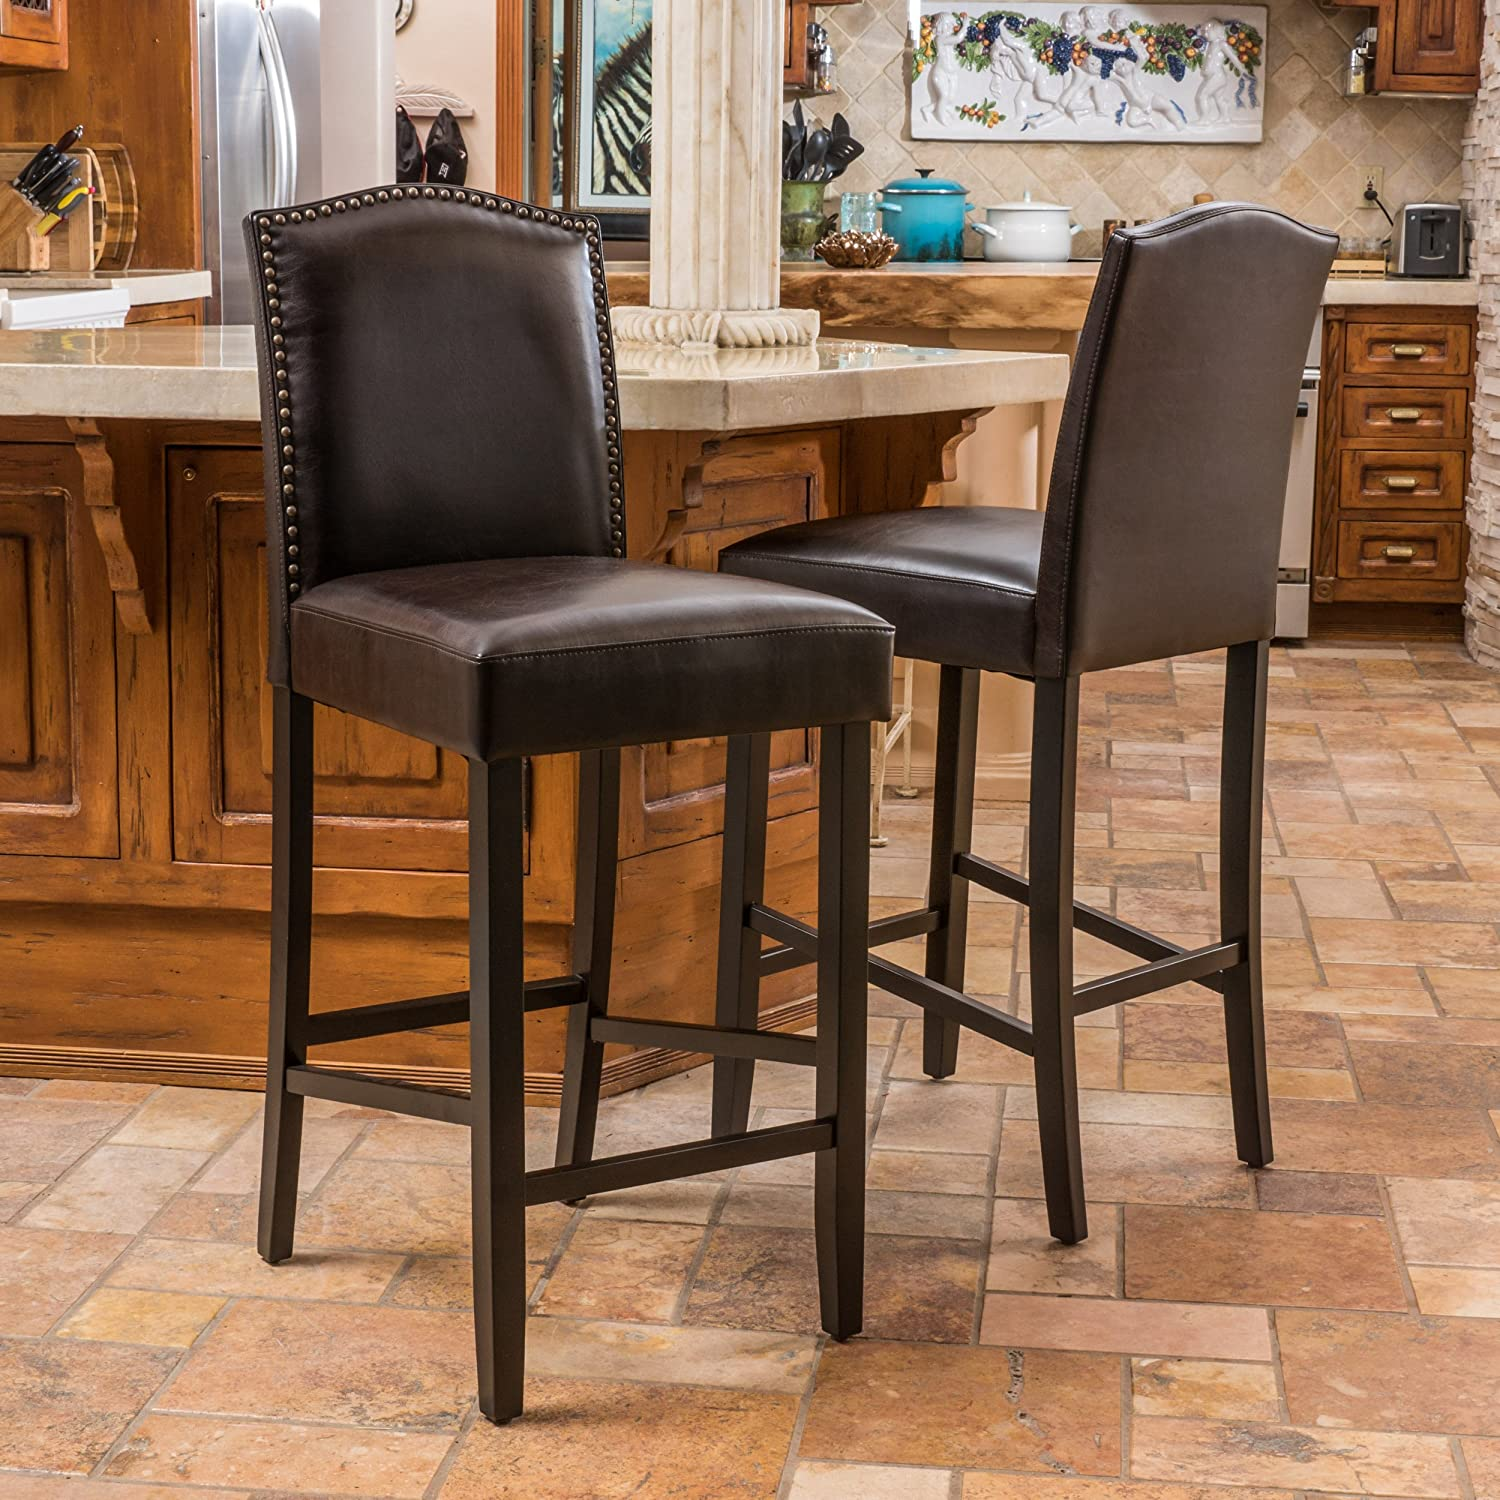 Genial Amazon.com: Great Deal Furniture Auburn Bonded Leather Backed Bar Stool  With Nail Head Accents (Brown) (Set Of 2): Kitchen U0026 Dining